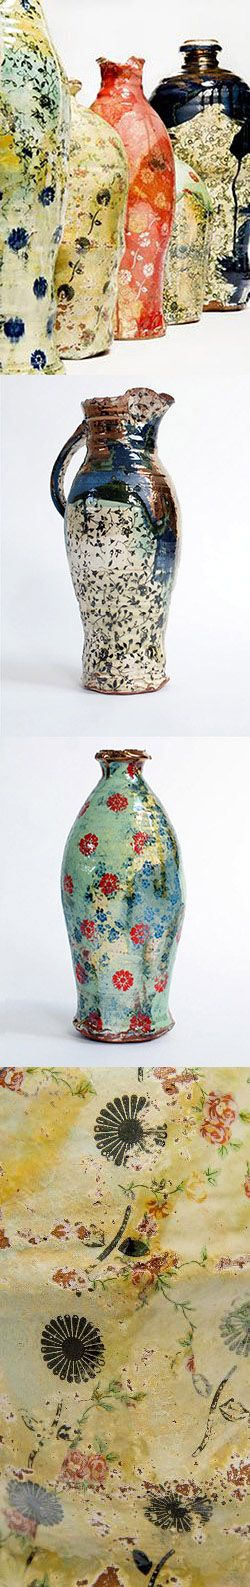 Ceramic by Christopher Taylor